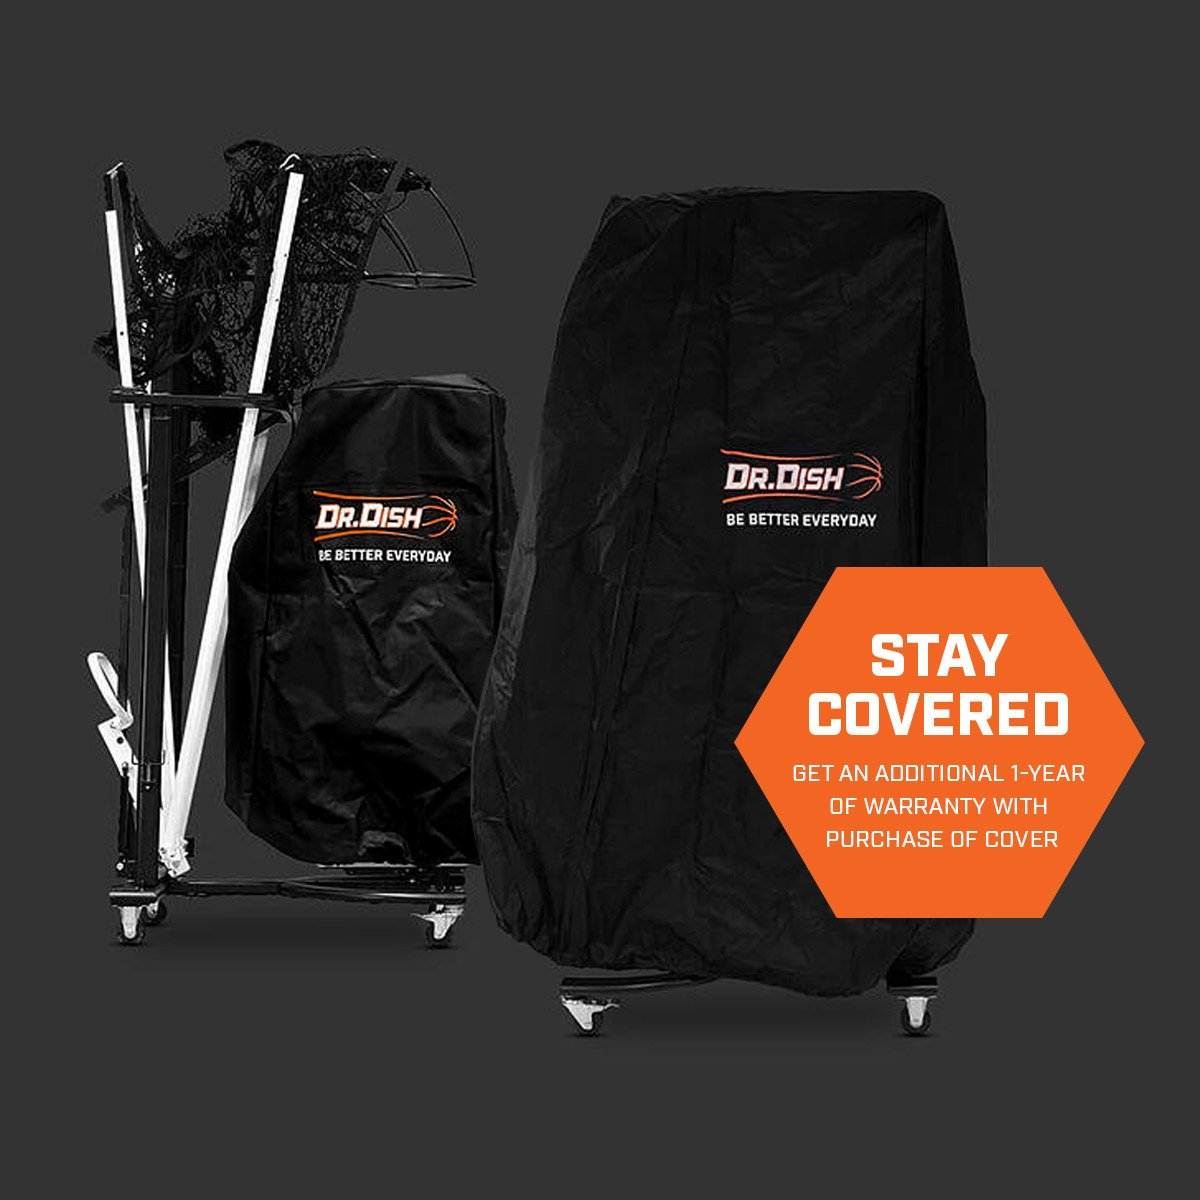 Get an additional one year warranty with the purchase of a cover